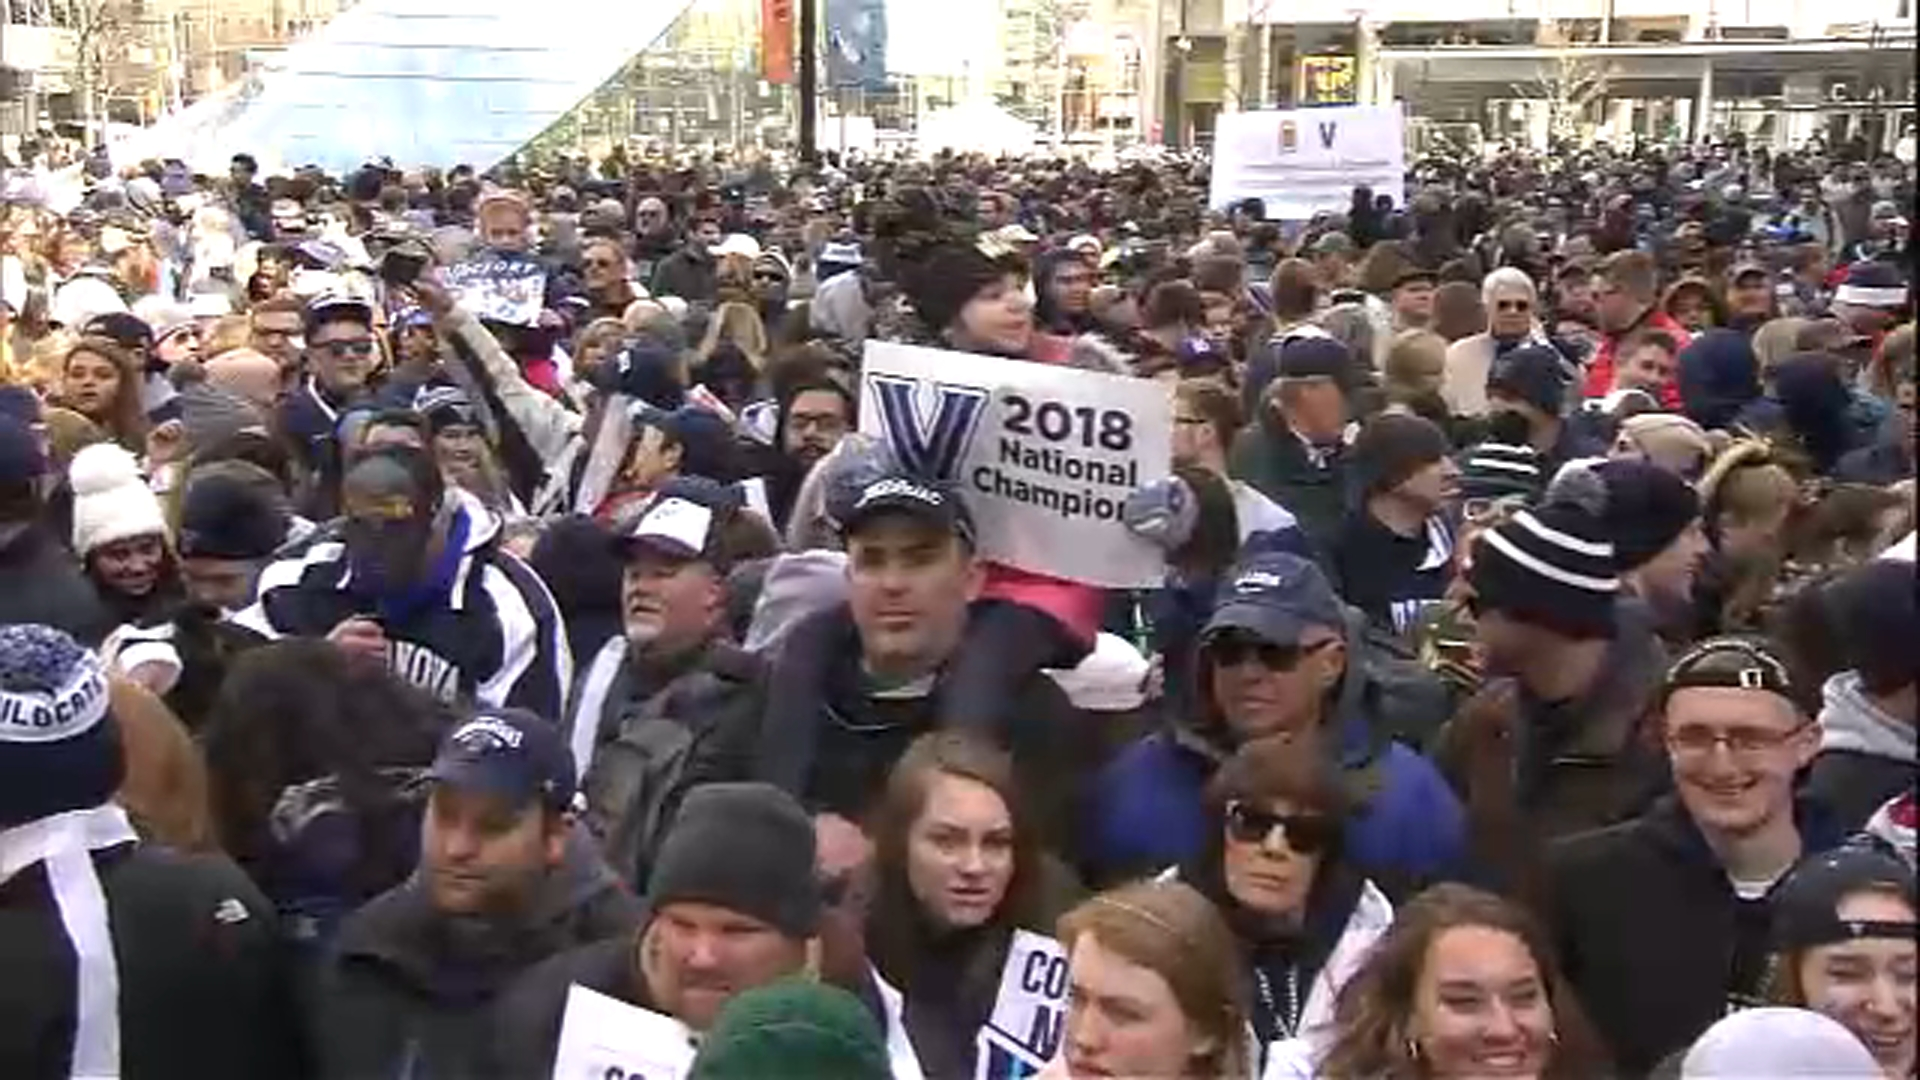 "<div class=""meta image-caption""><div class=""origin-logo origin-image wpvi""><span>WPVI</span></div><span class=""caption-text"">Pictured: Villanova National Championship Parade in Center City Philadelphia on April 5, 2018.</span></div>"